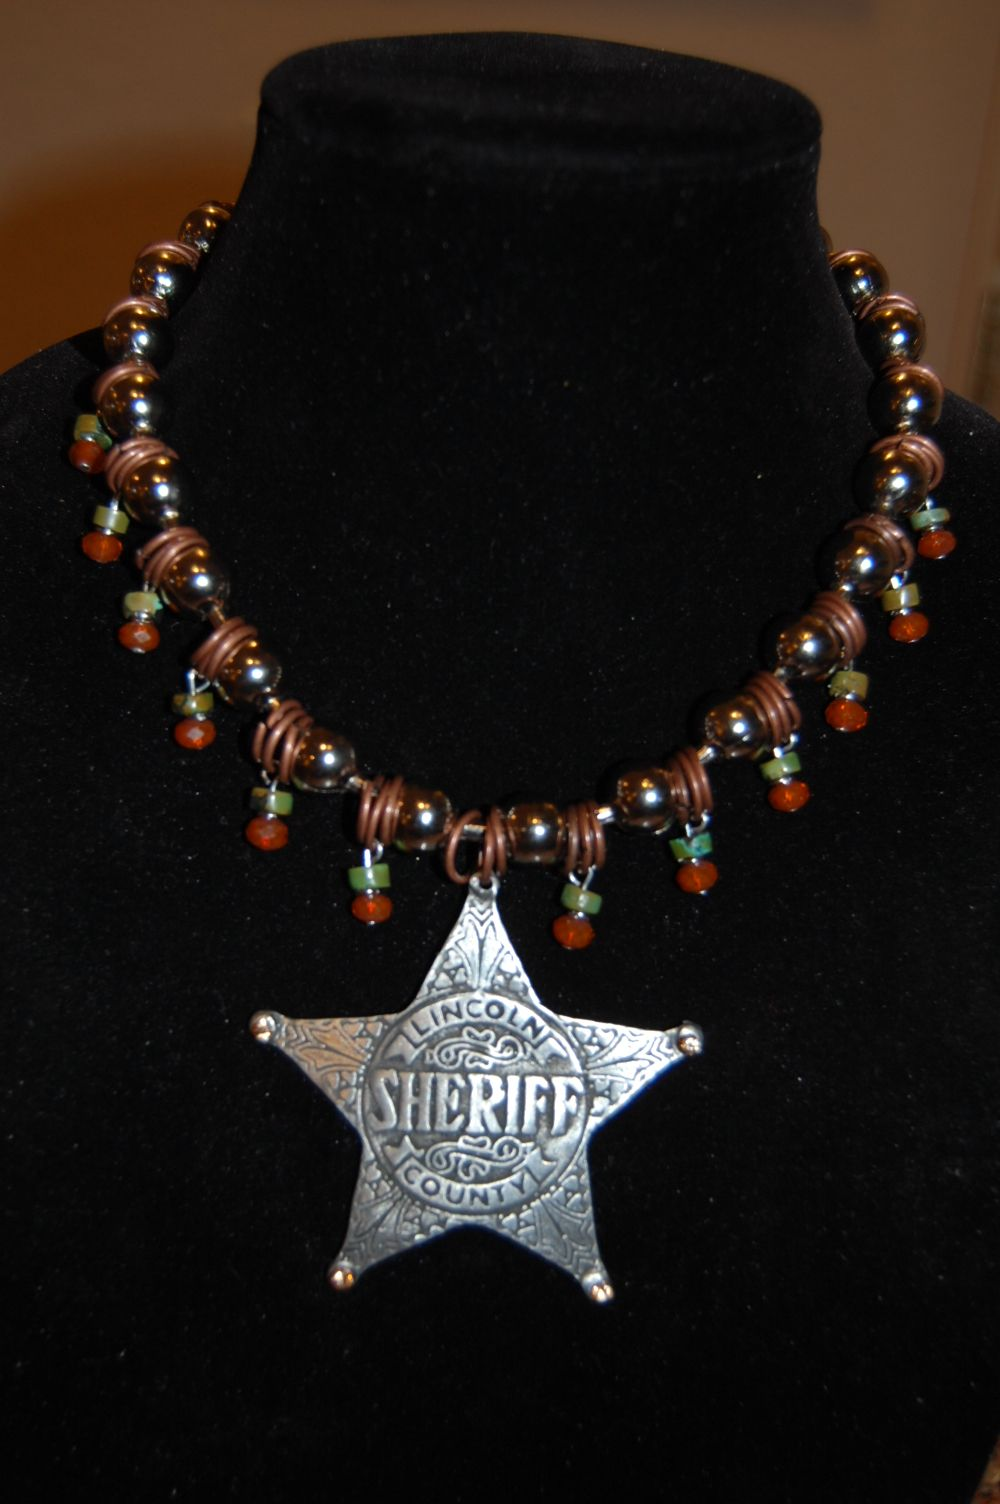 Menono Designs - Upcycled Sheriff Badge with turquoise & orange crystals.  Find us on facebook.